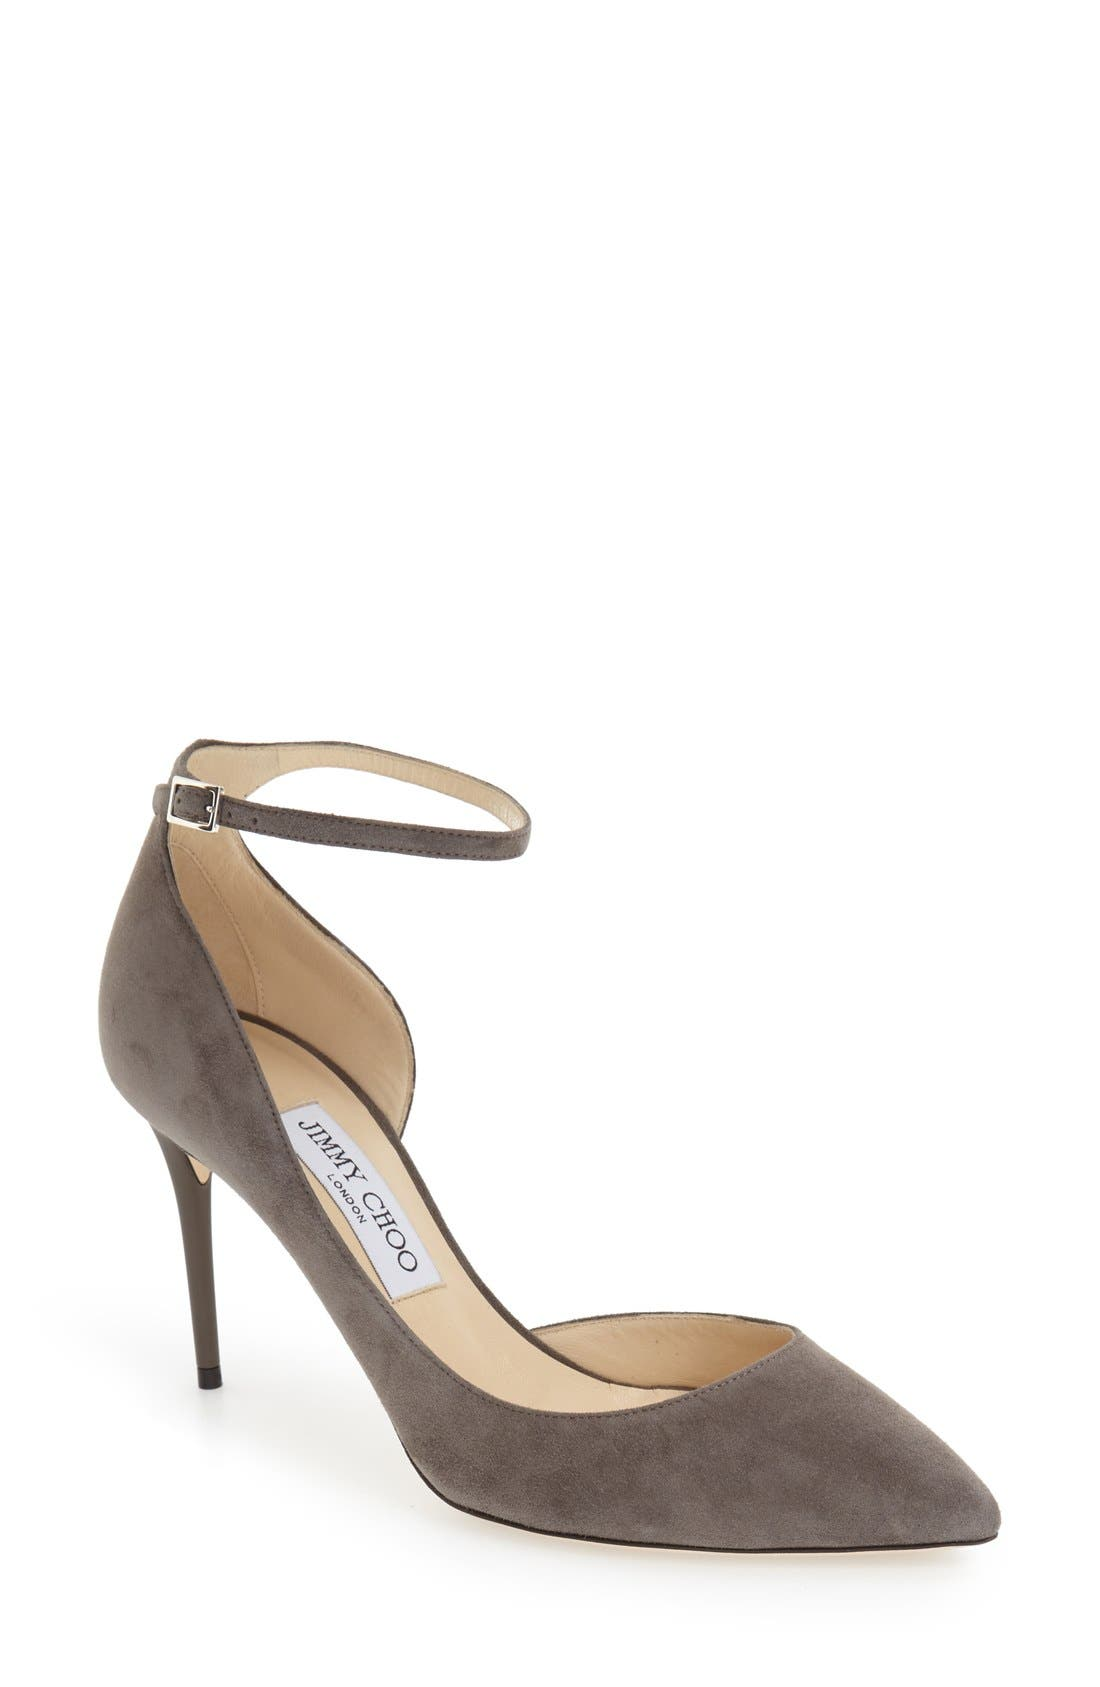 'Lucy' Half d'Orsay Pointy Toe Pump,                             Main thumbnail 1, color,                             Taupe Grey Suede